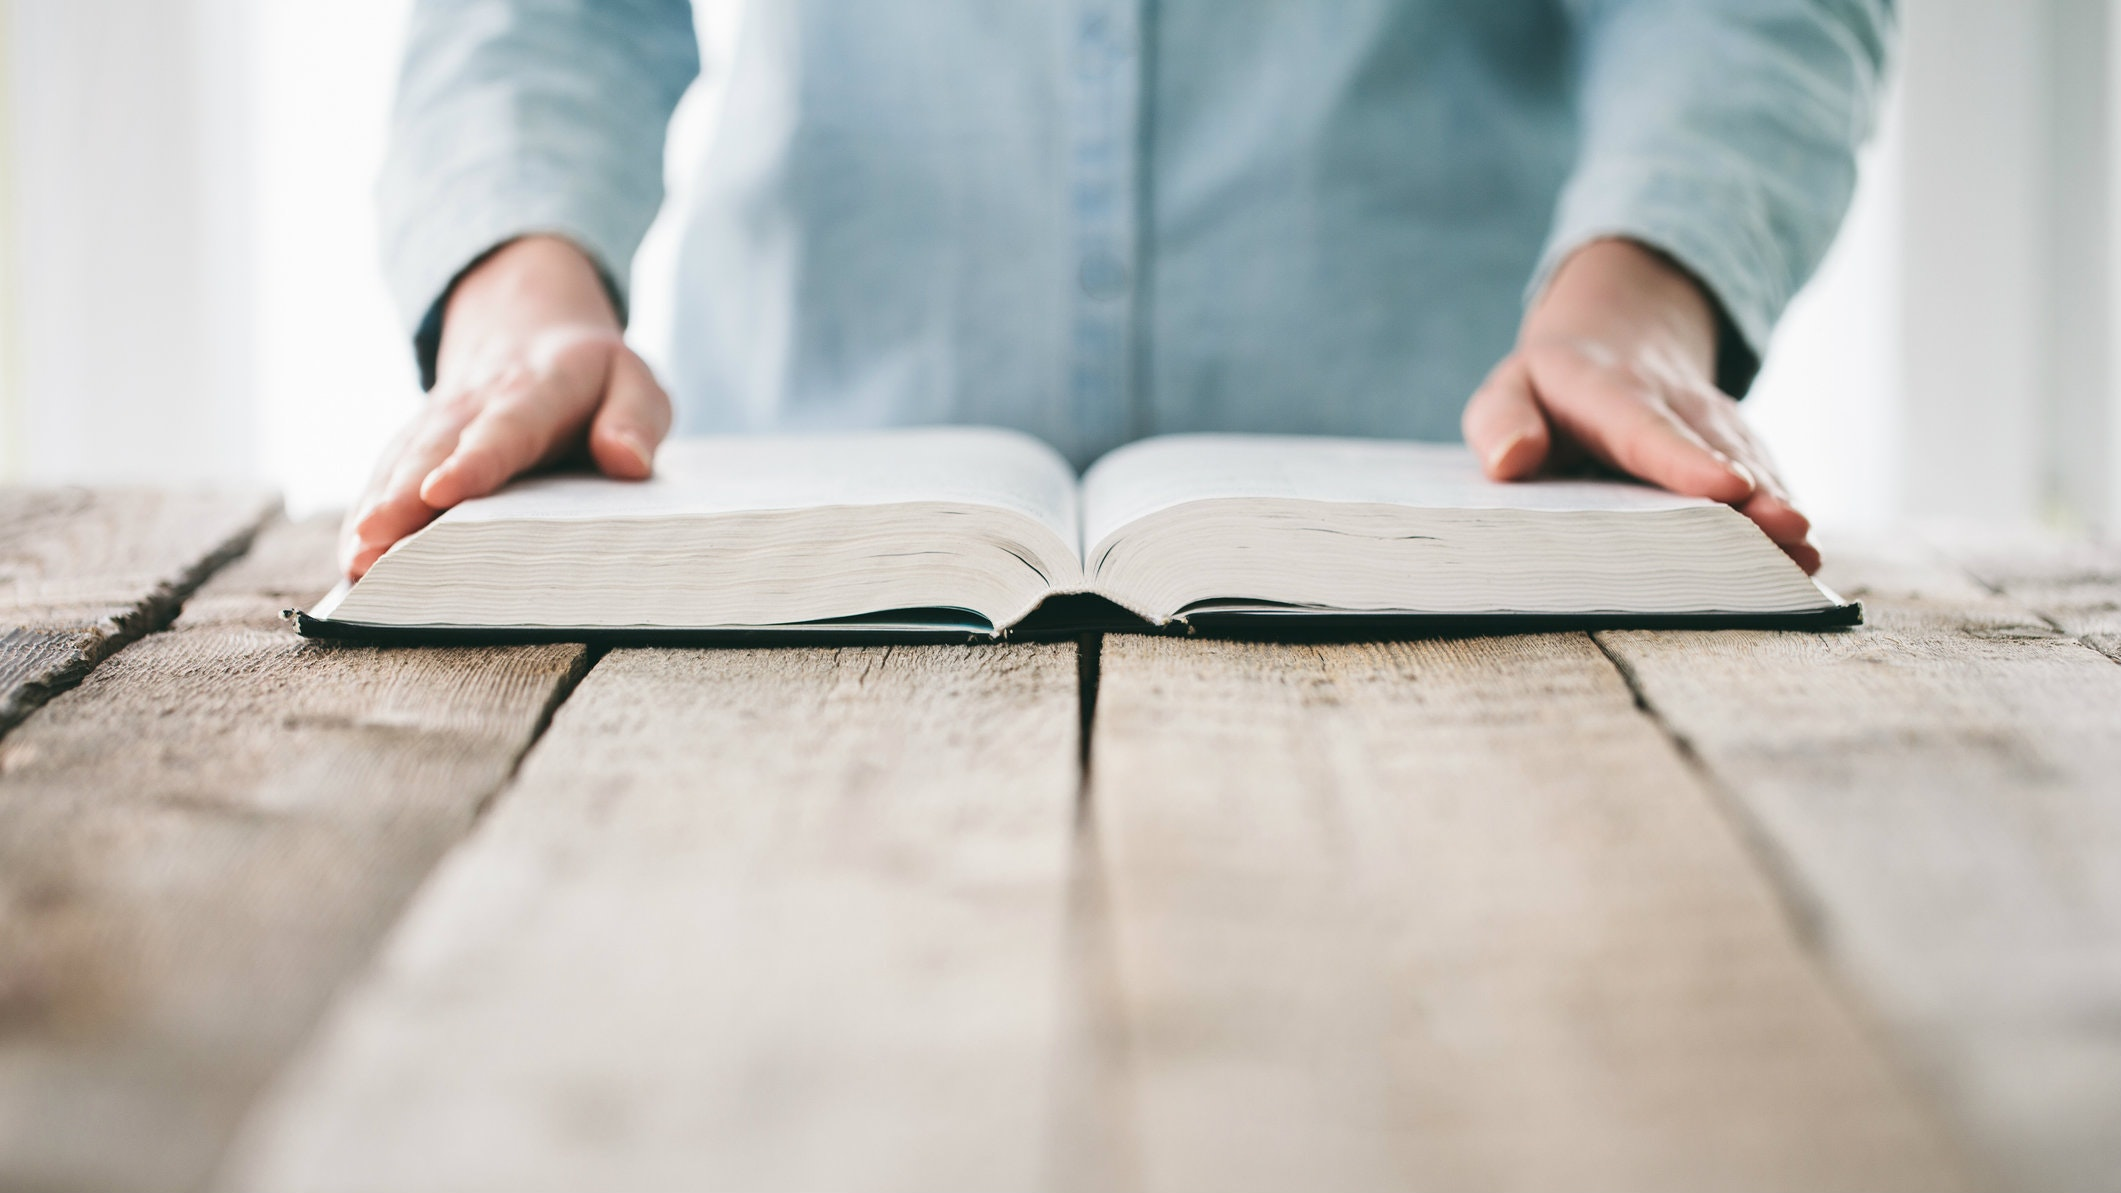 Can I read the gospel while sitting and lying down